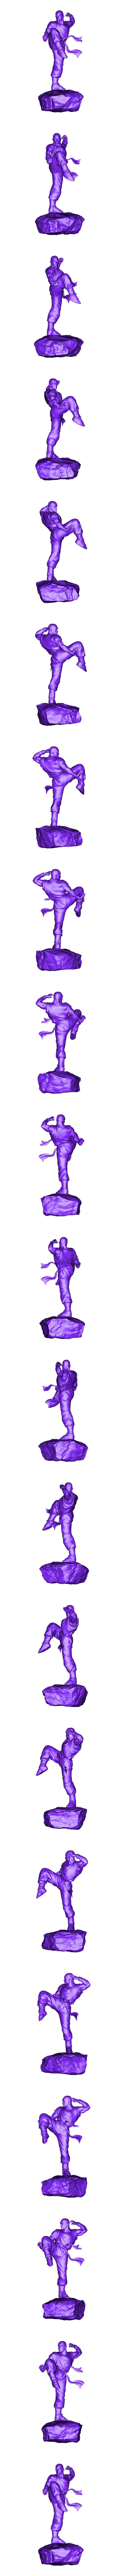 kungFu.stl Download free STL file Kung Fu • Model to 3D print, stlfilesfree